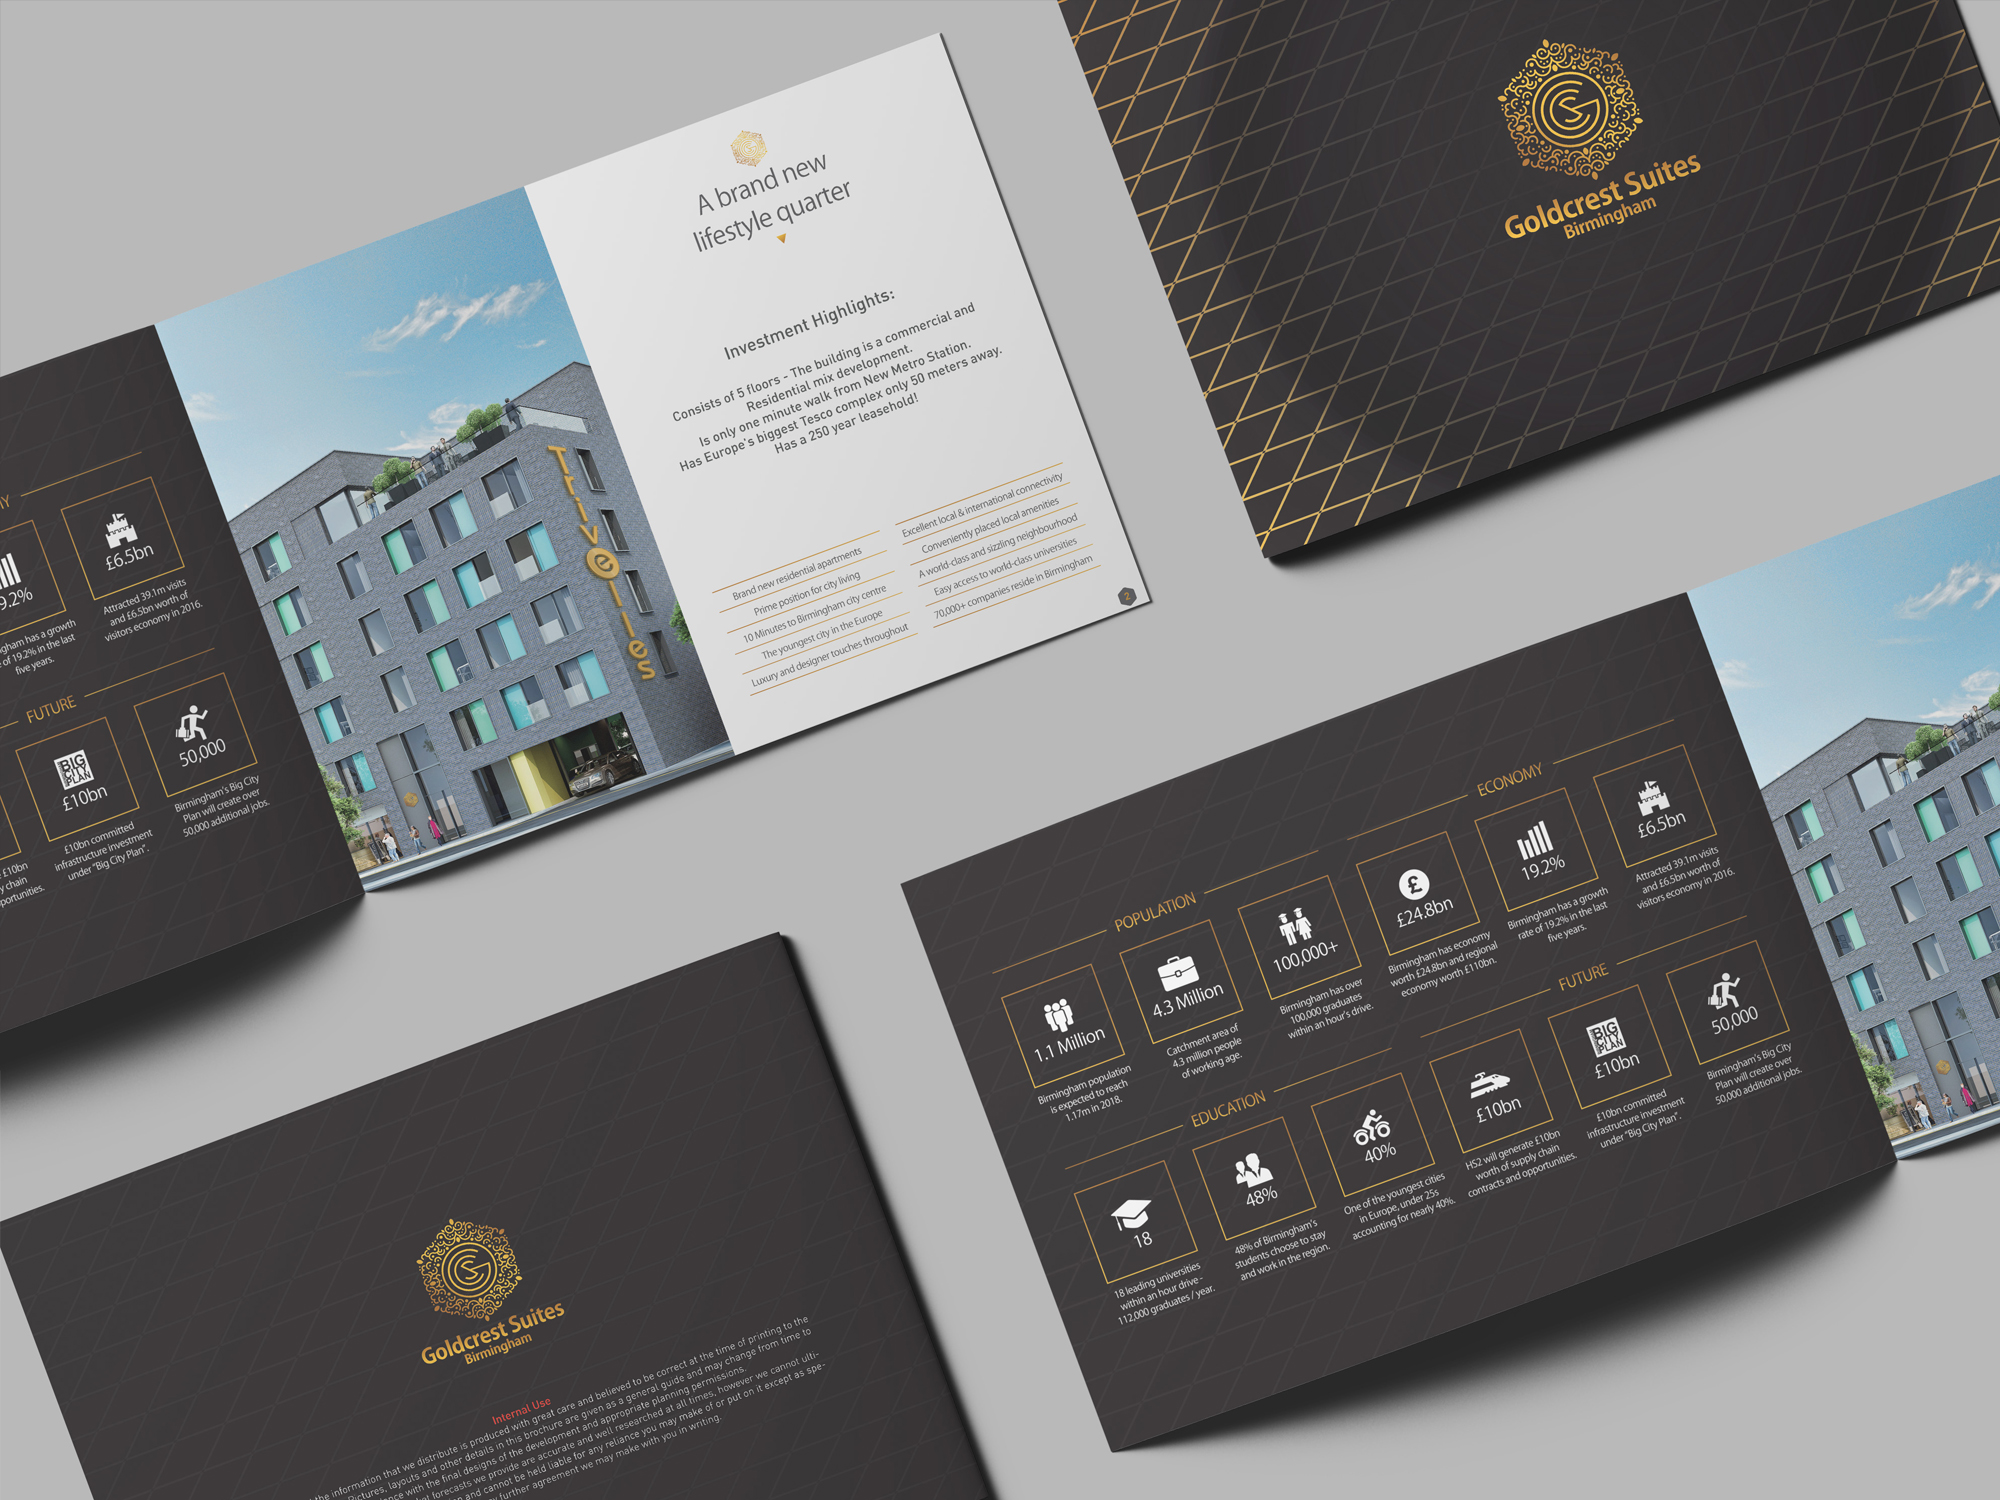 Goldcrest - Brochure Design